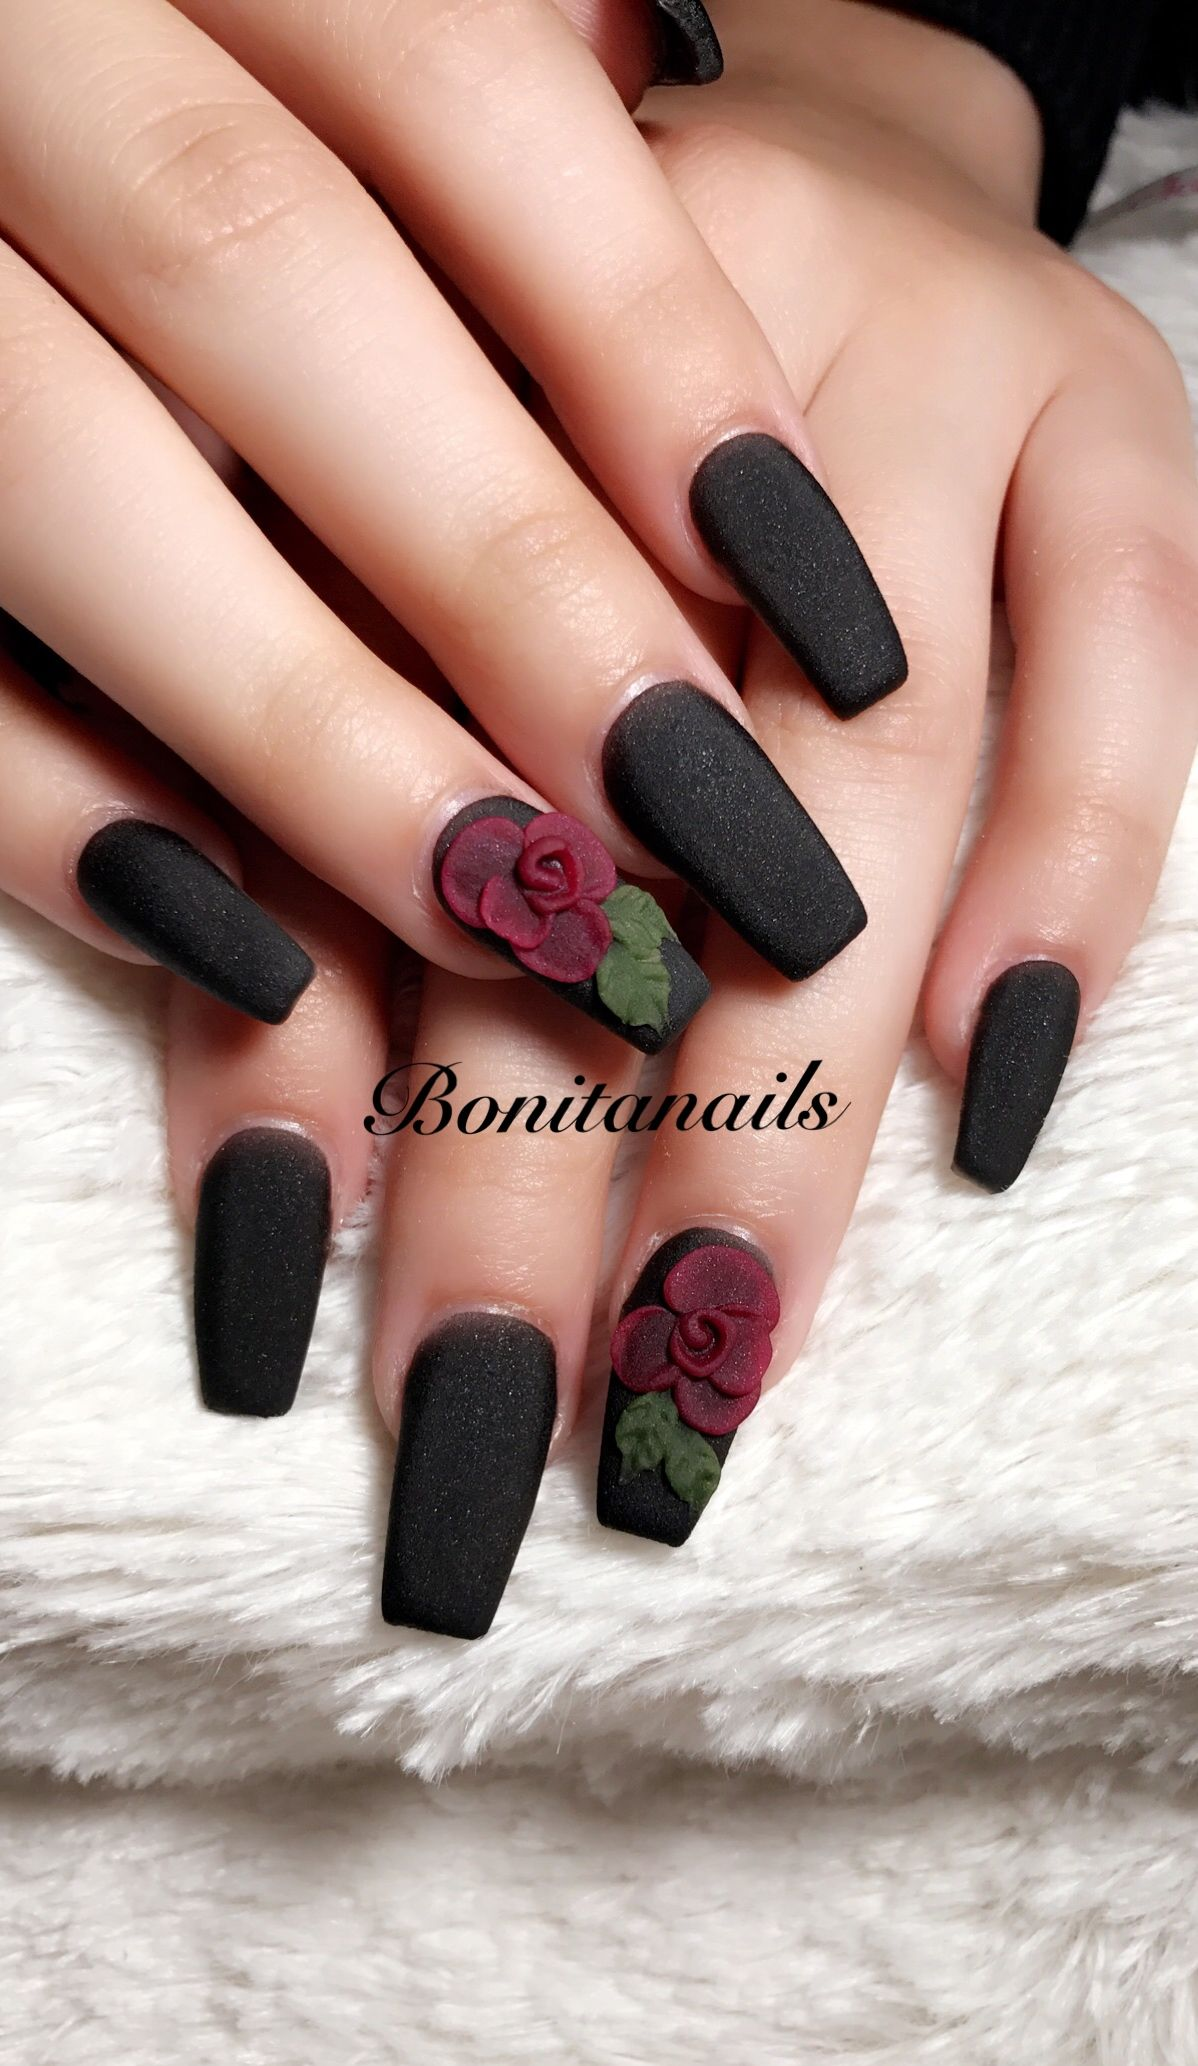 Pin by JD Nails on uñas y más.... | Pinterest